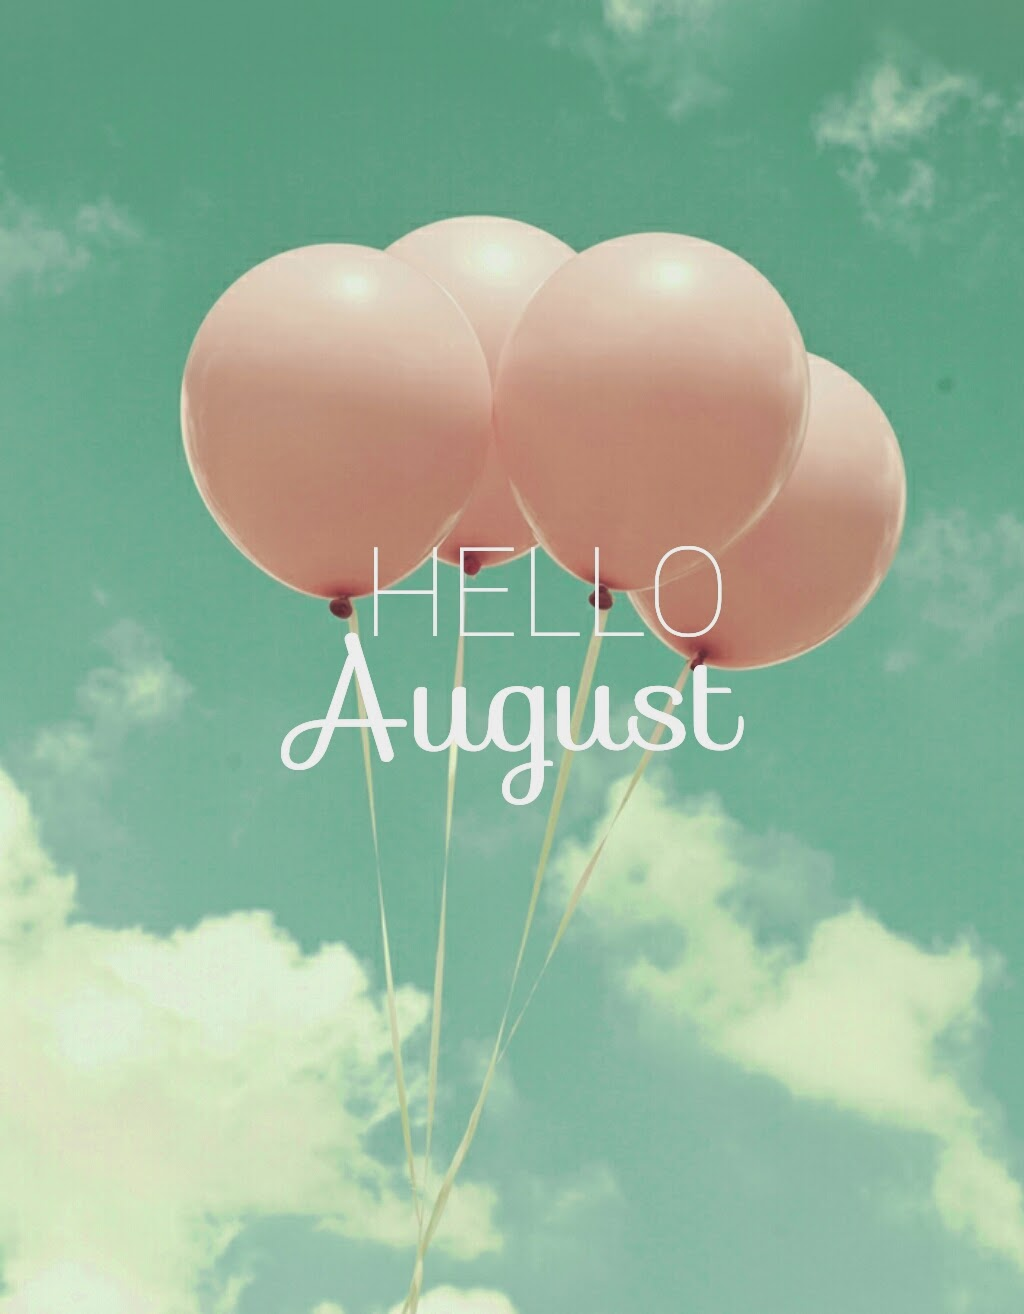 Hello August Tumblr Wallpapers